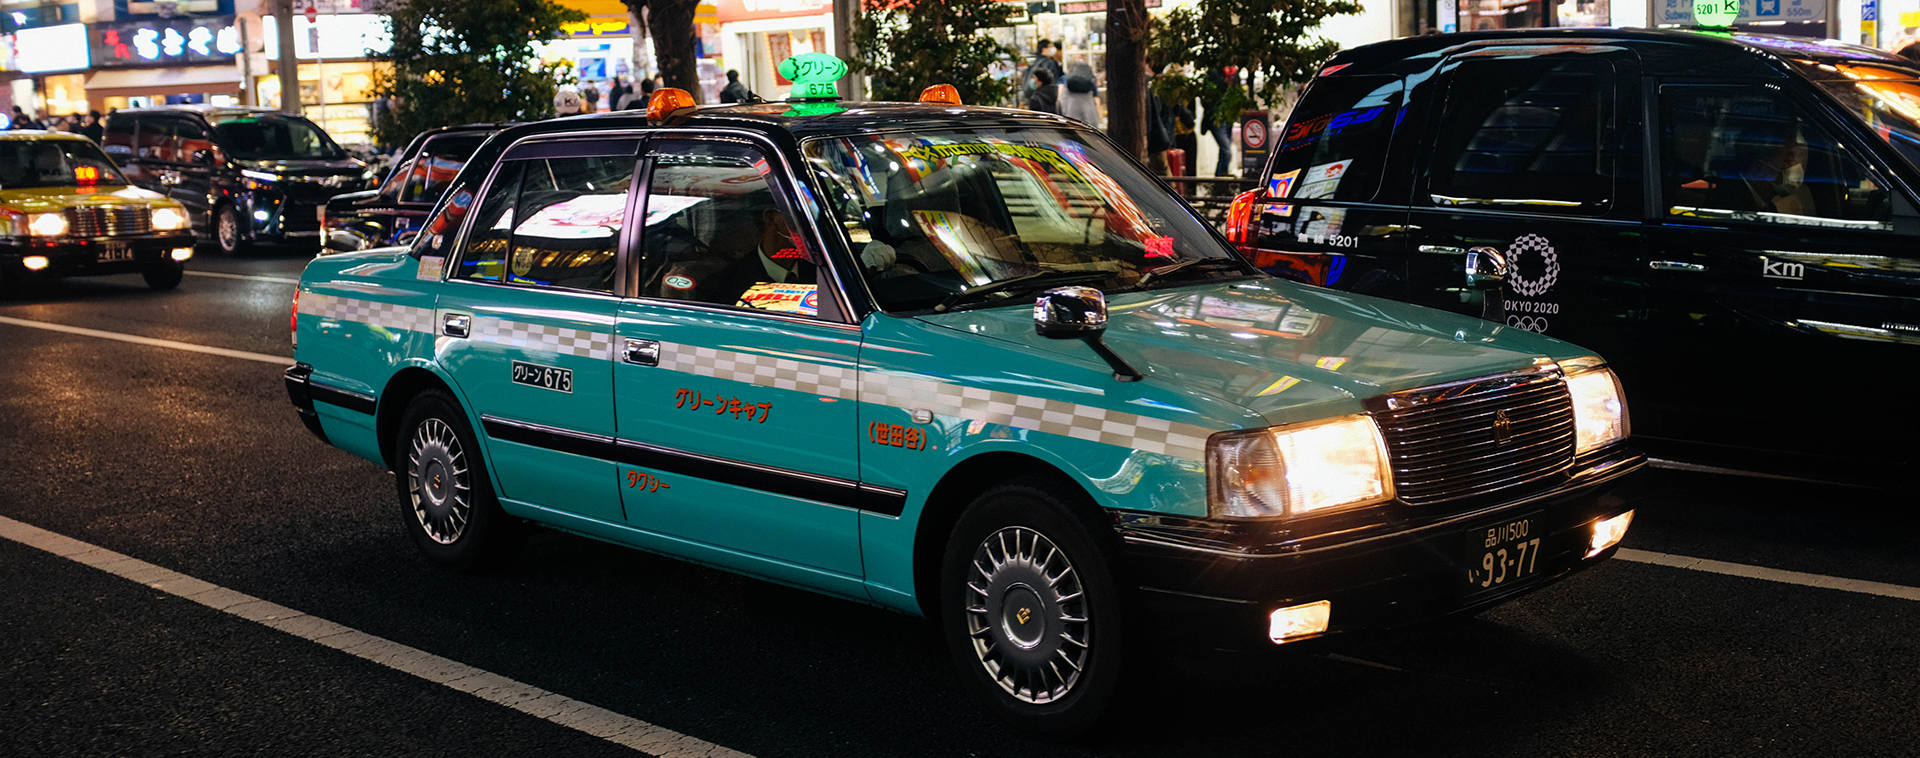 Vintage Japanese Taxi in Tokyo